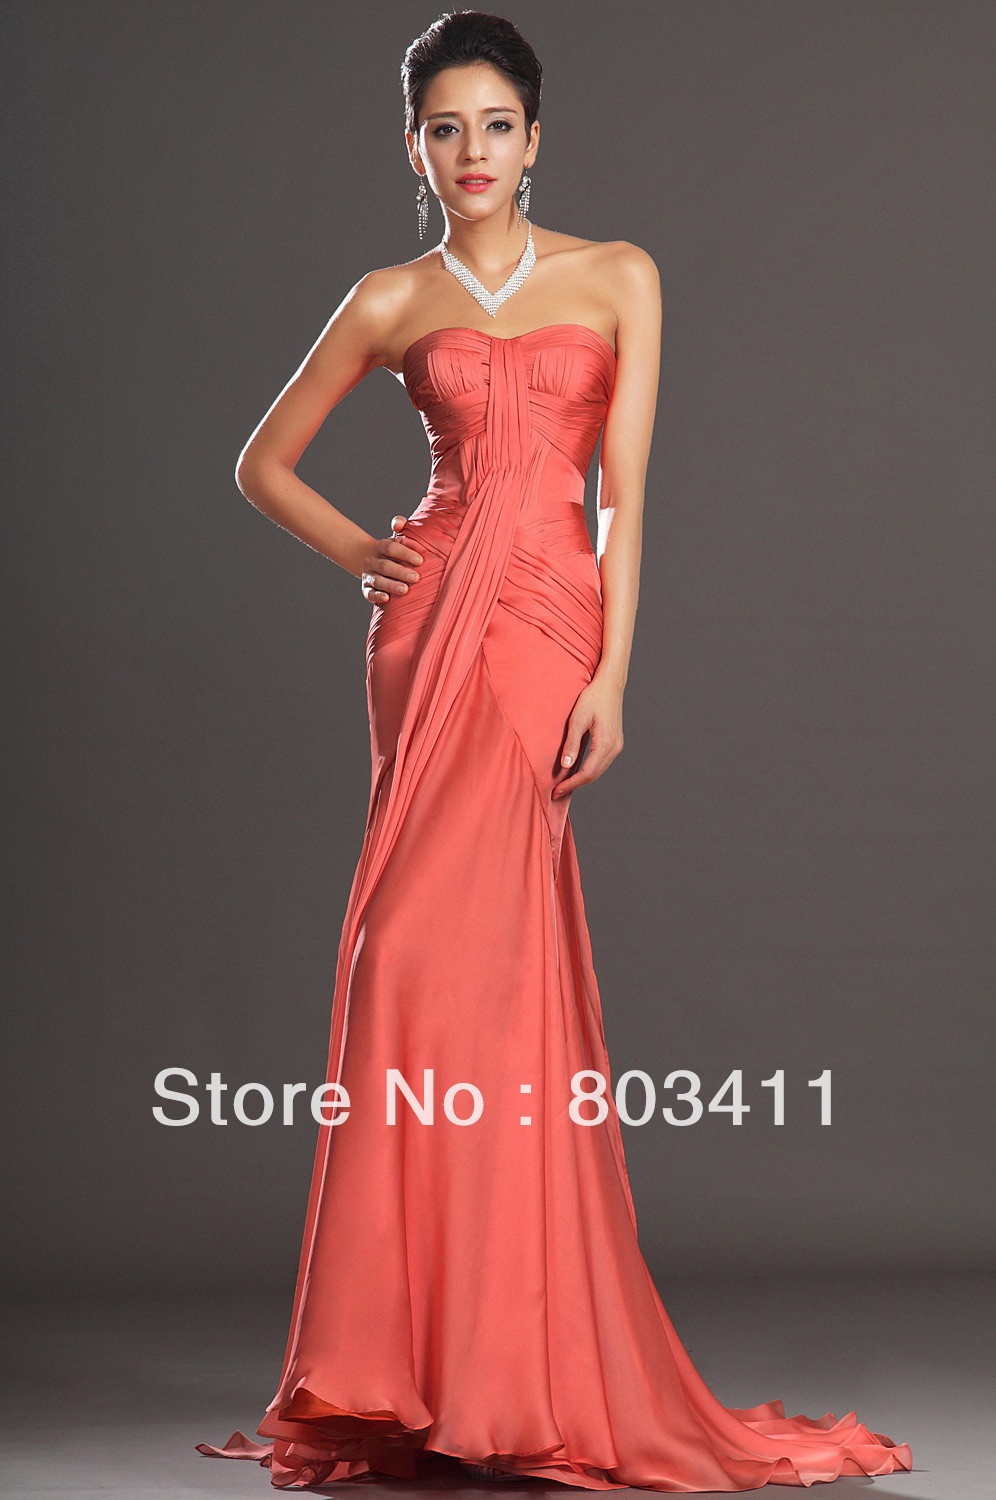 FreeShipping New Arrival Elegant Strapless A-Line Sweetheart Neckline Orange Chiffon   Evening     Dress